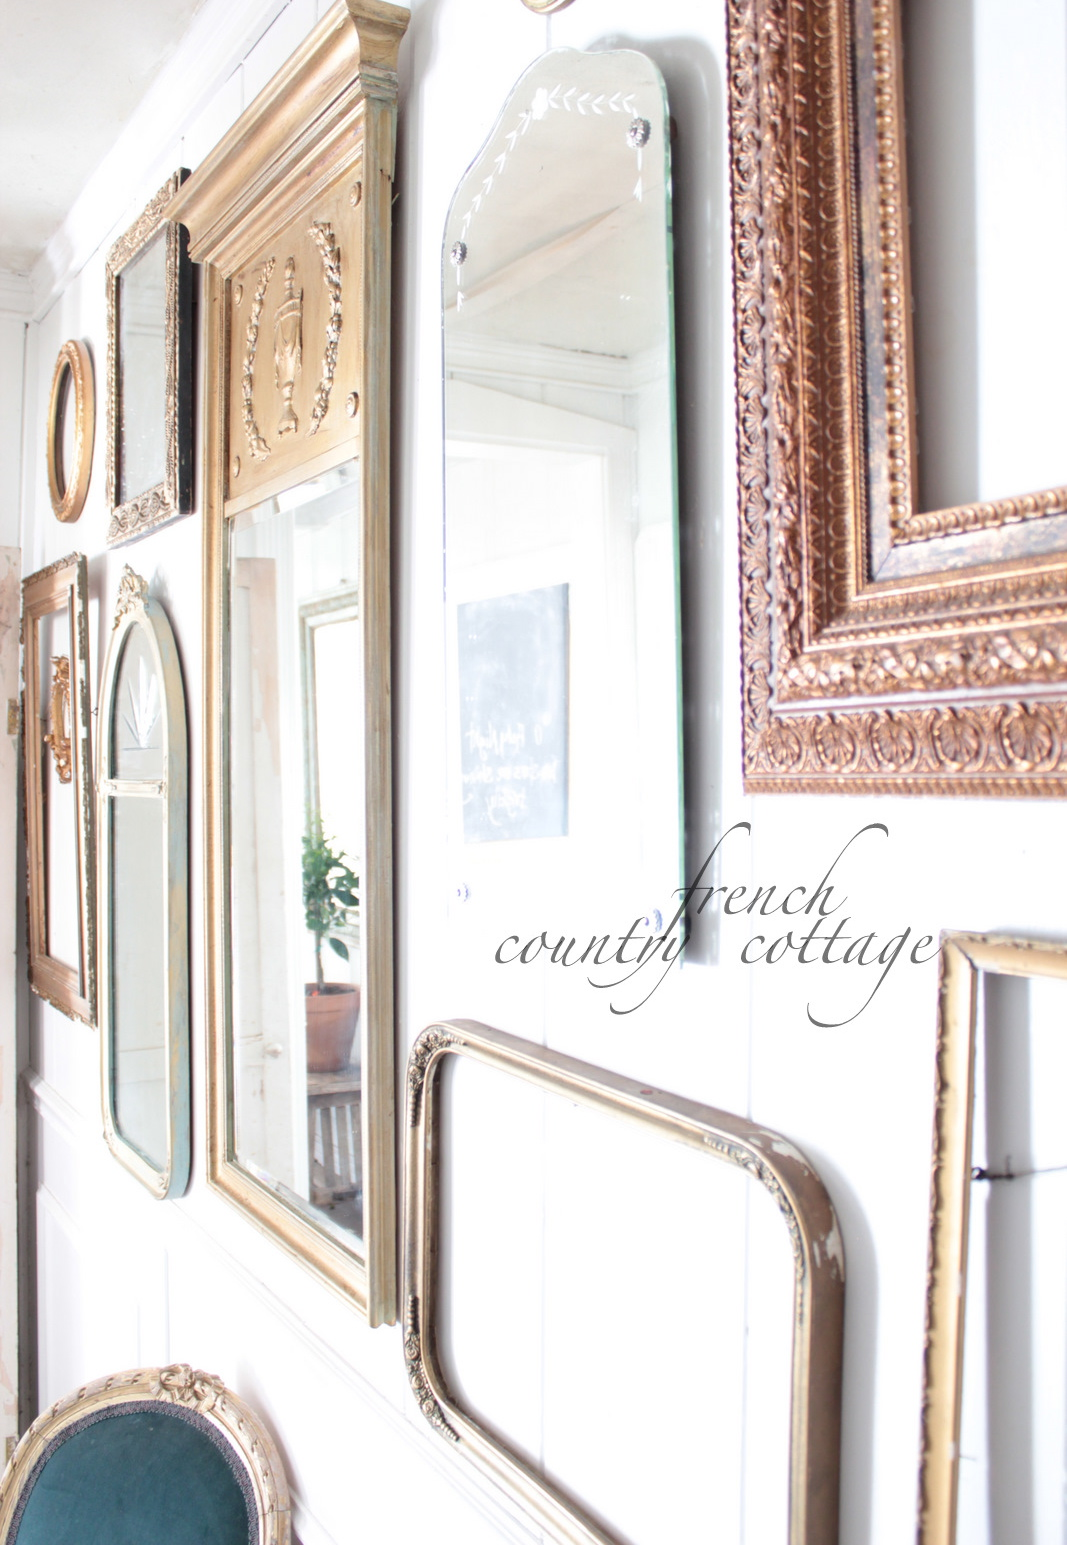 Gallery wall of frames mirrors french country cottage gallery wall of frames mirrors jeuxipadfo Choice Image